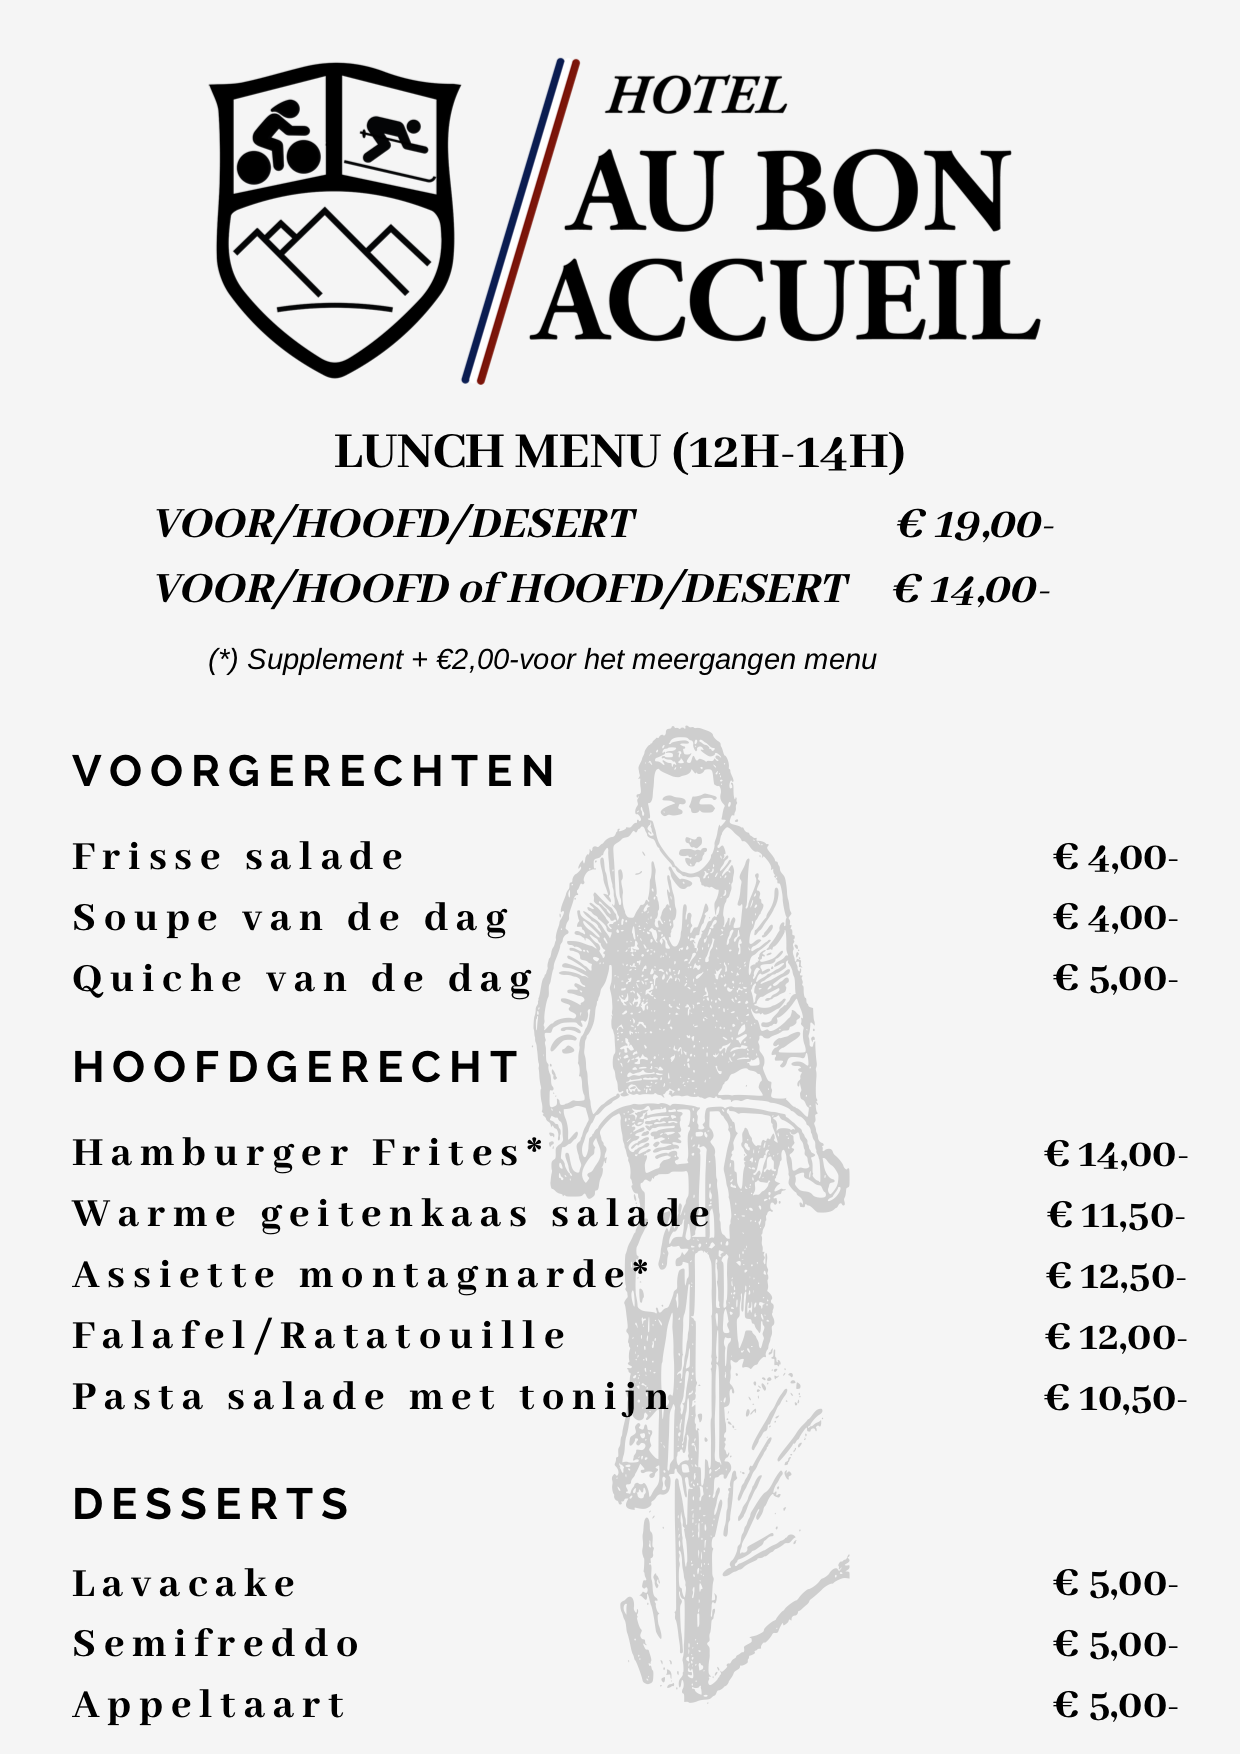 Our lunchmenu from 12:00 to 14:00 in the afternoon